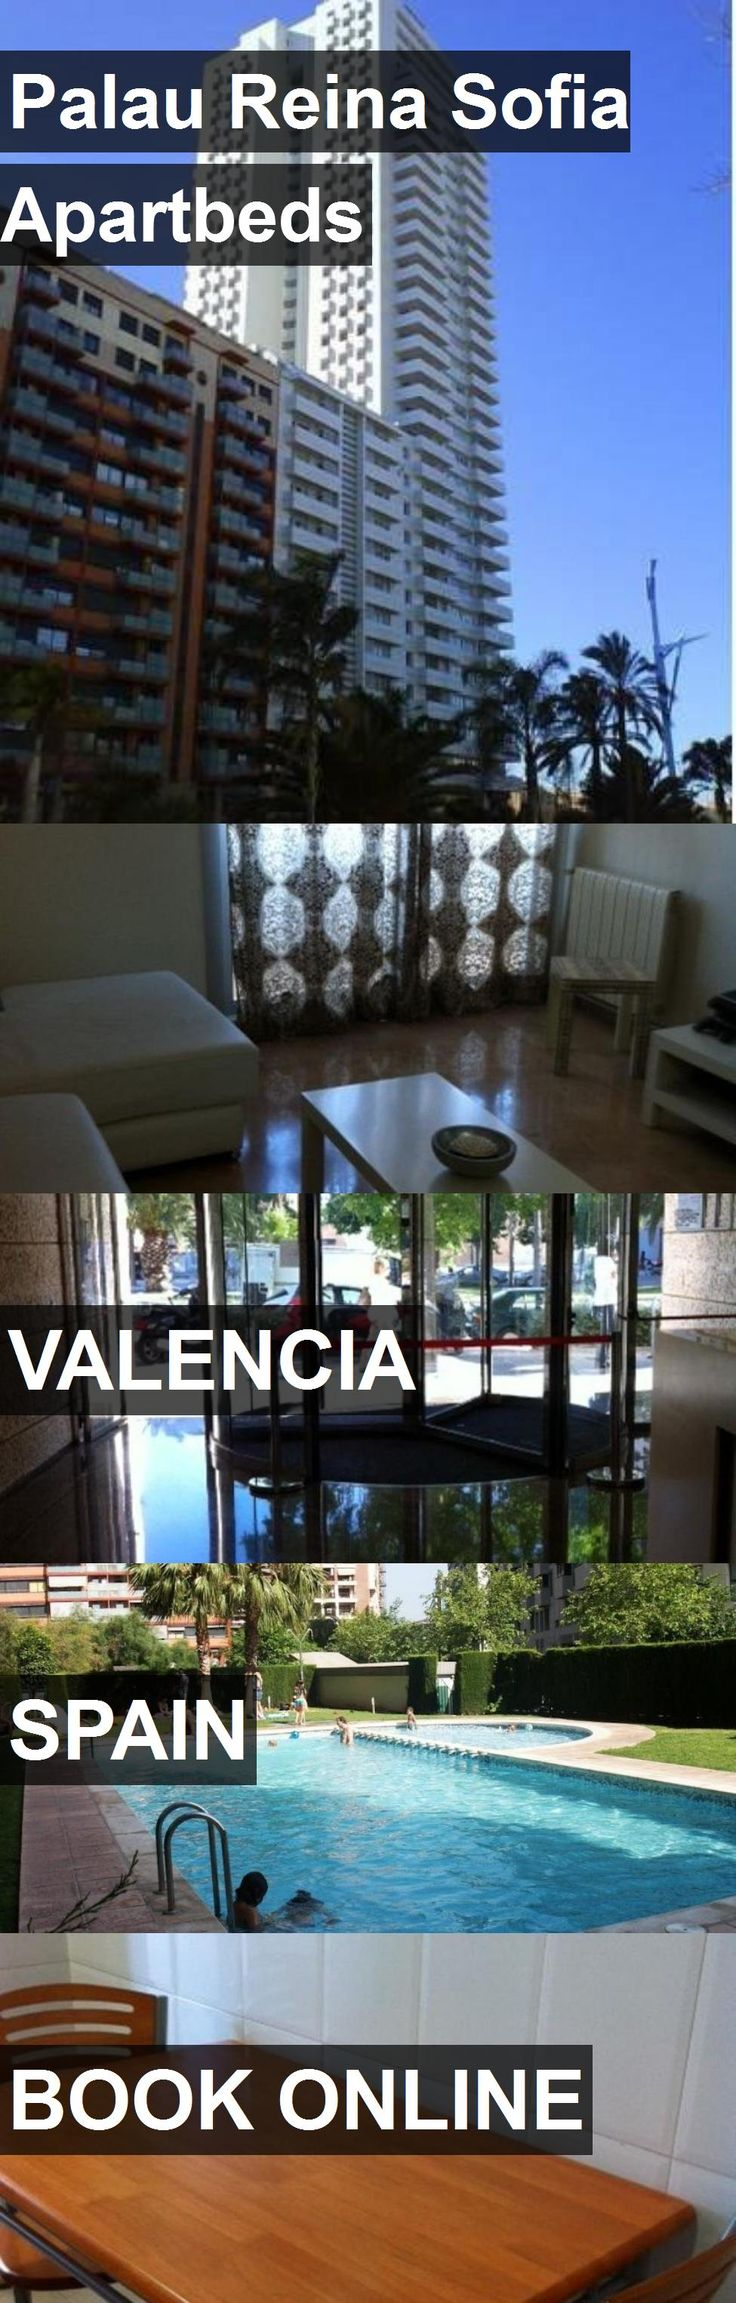 Hotel Palau Reina Sofia Apartbeds in Valencia, Spain. For more information, photos, reviews and best prices please follow the link. #Spain #Valencia #travel #vacation #hotel